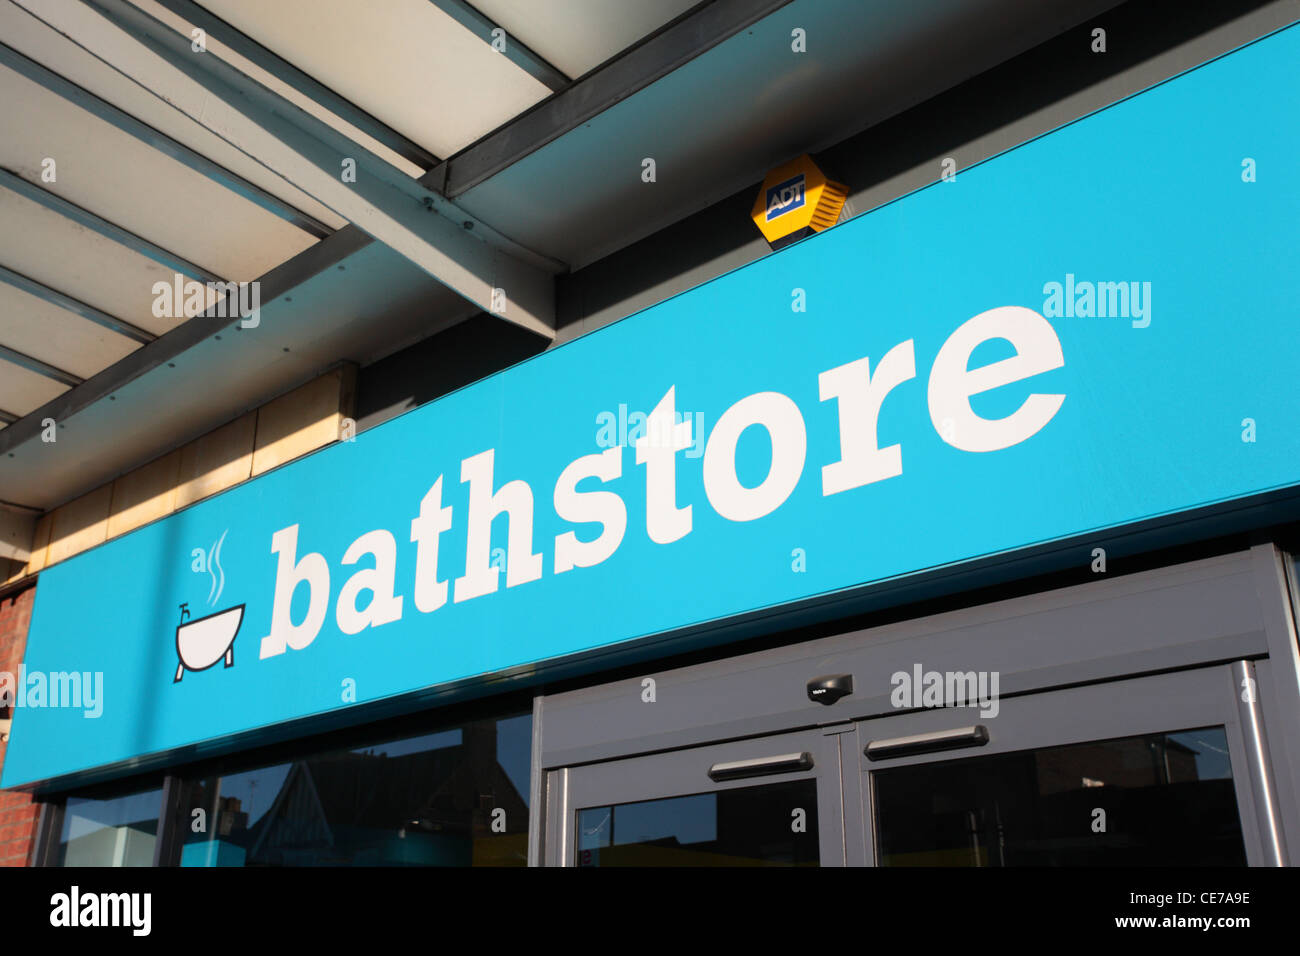 Bathstore Stock Photos & Bathstore Stock Images - Alamy